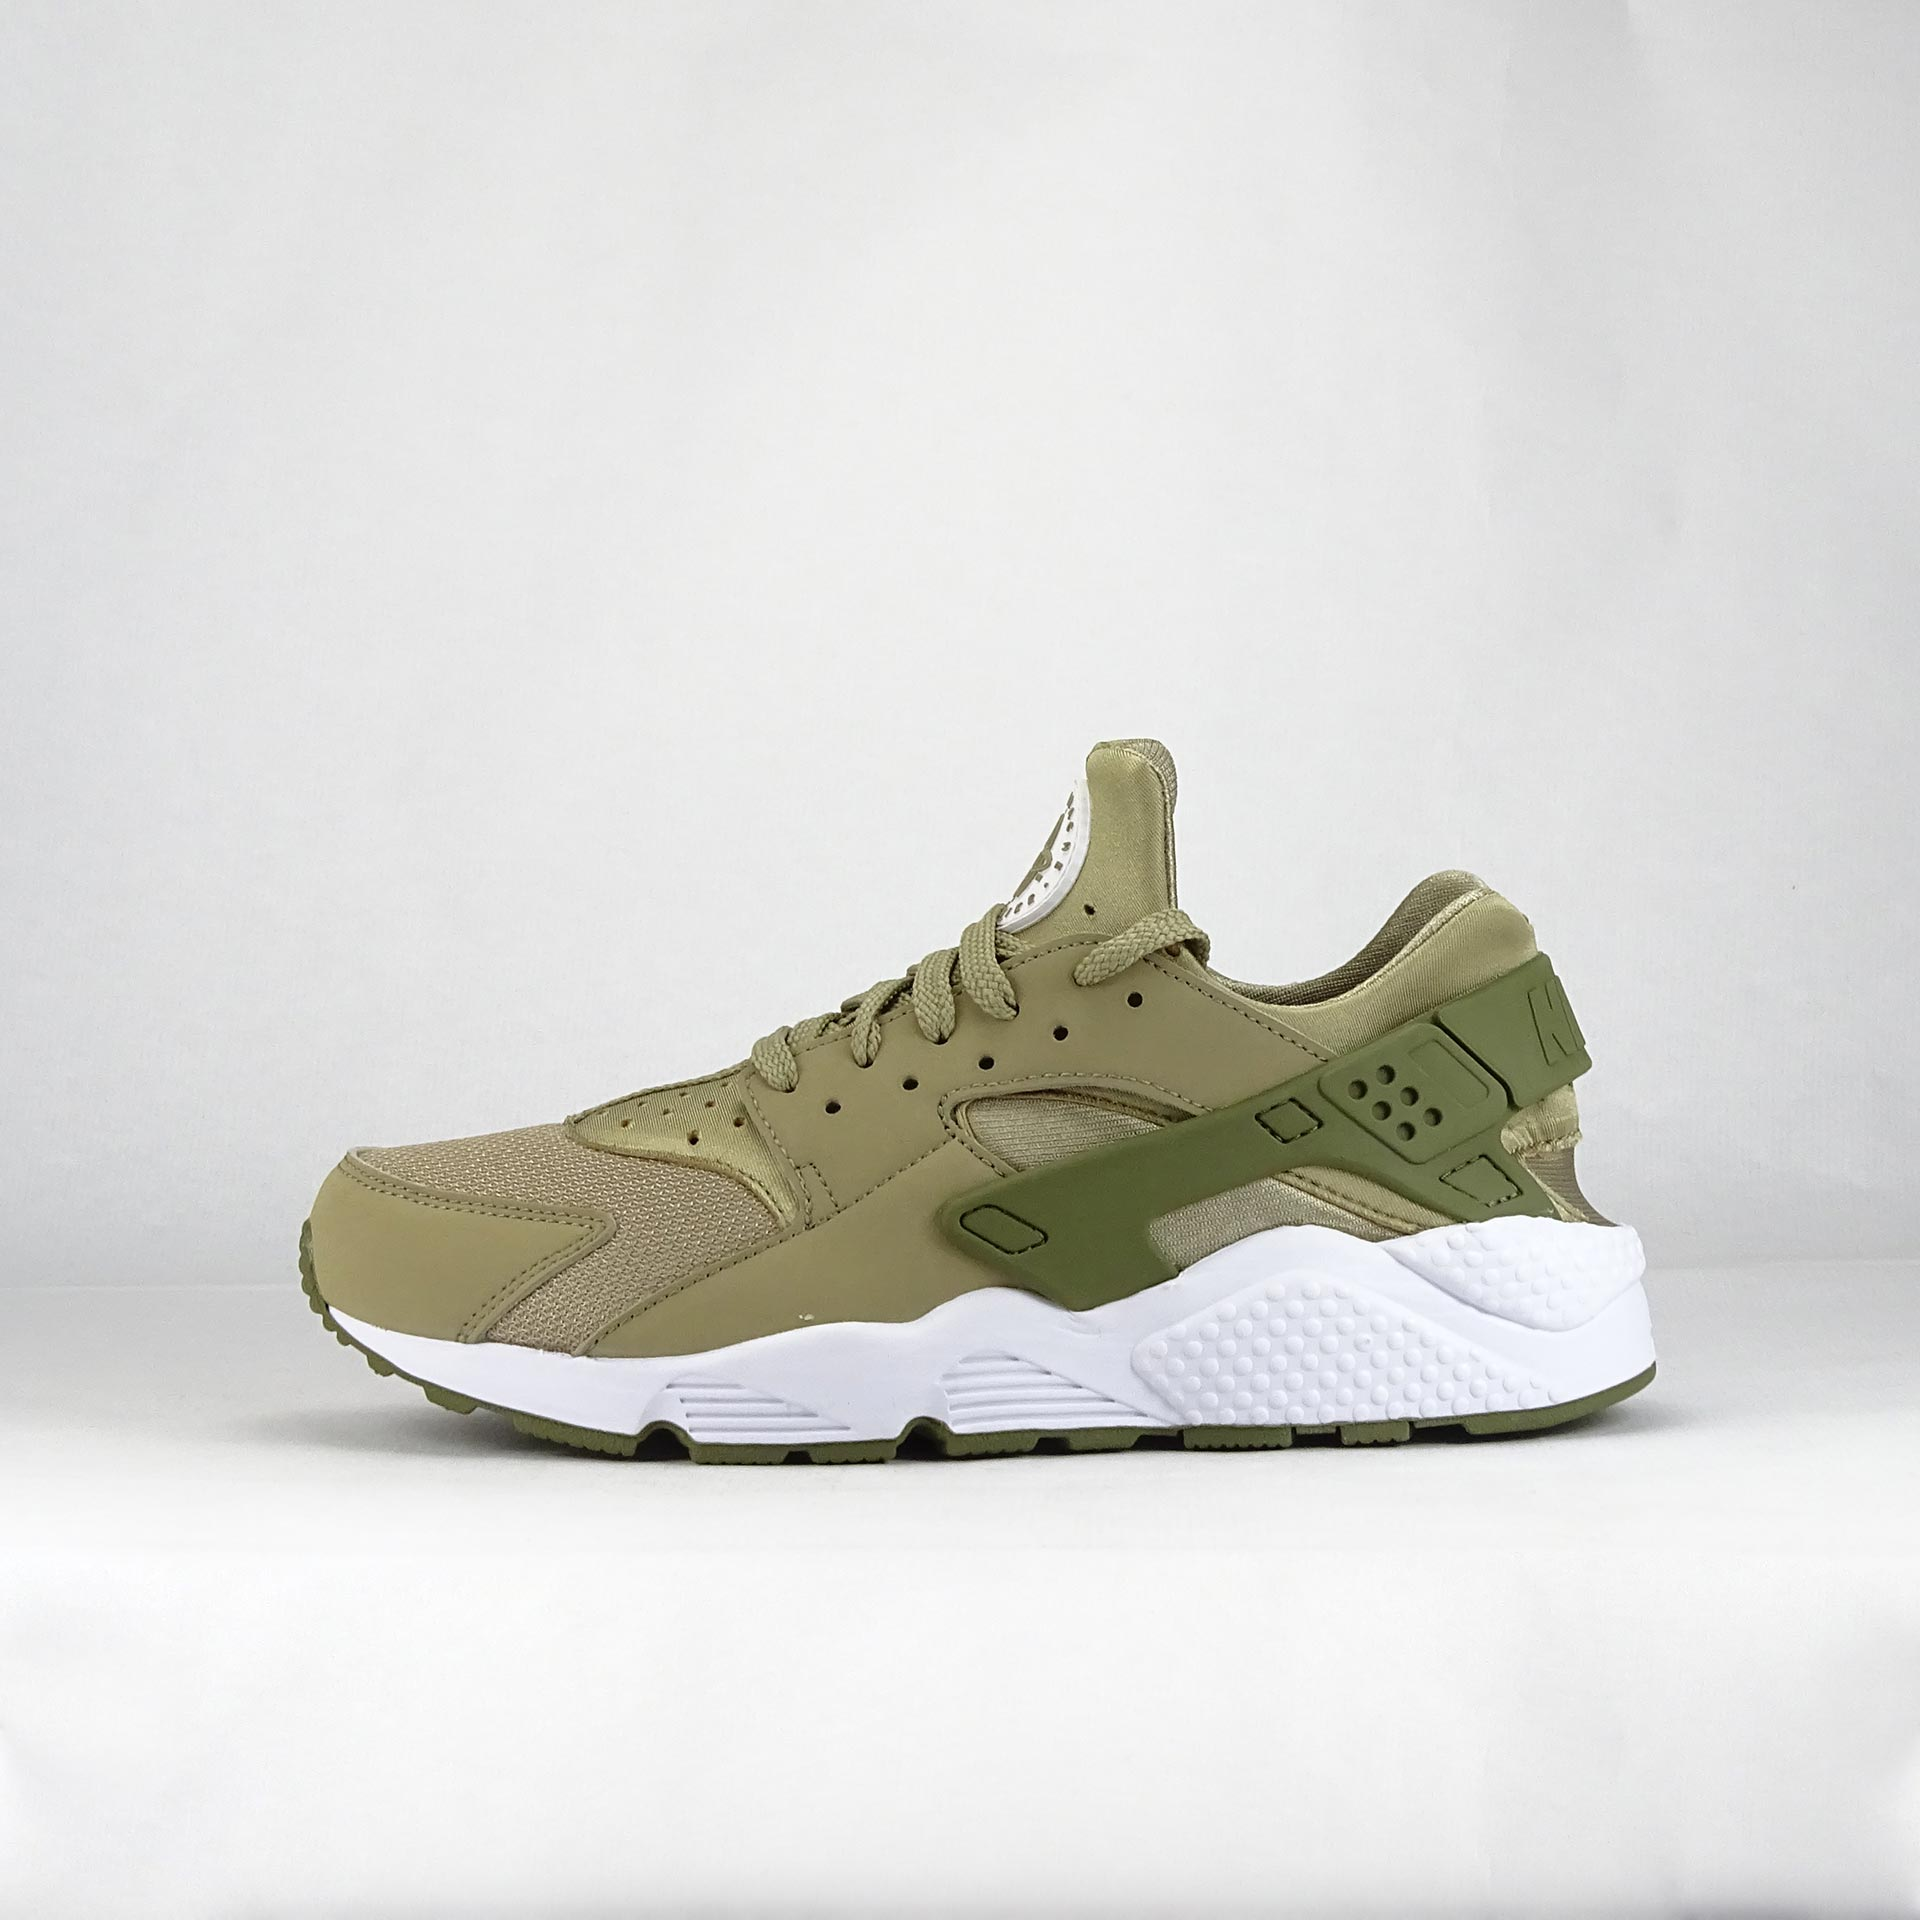 NIKE AIR HUARACHE VE, 8,5